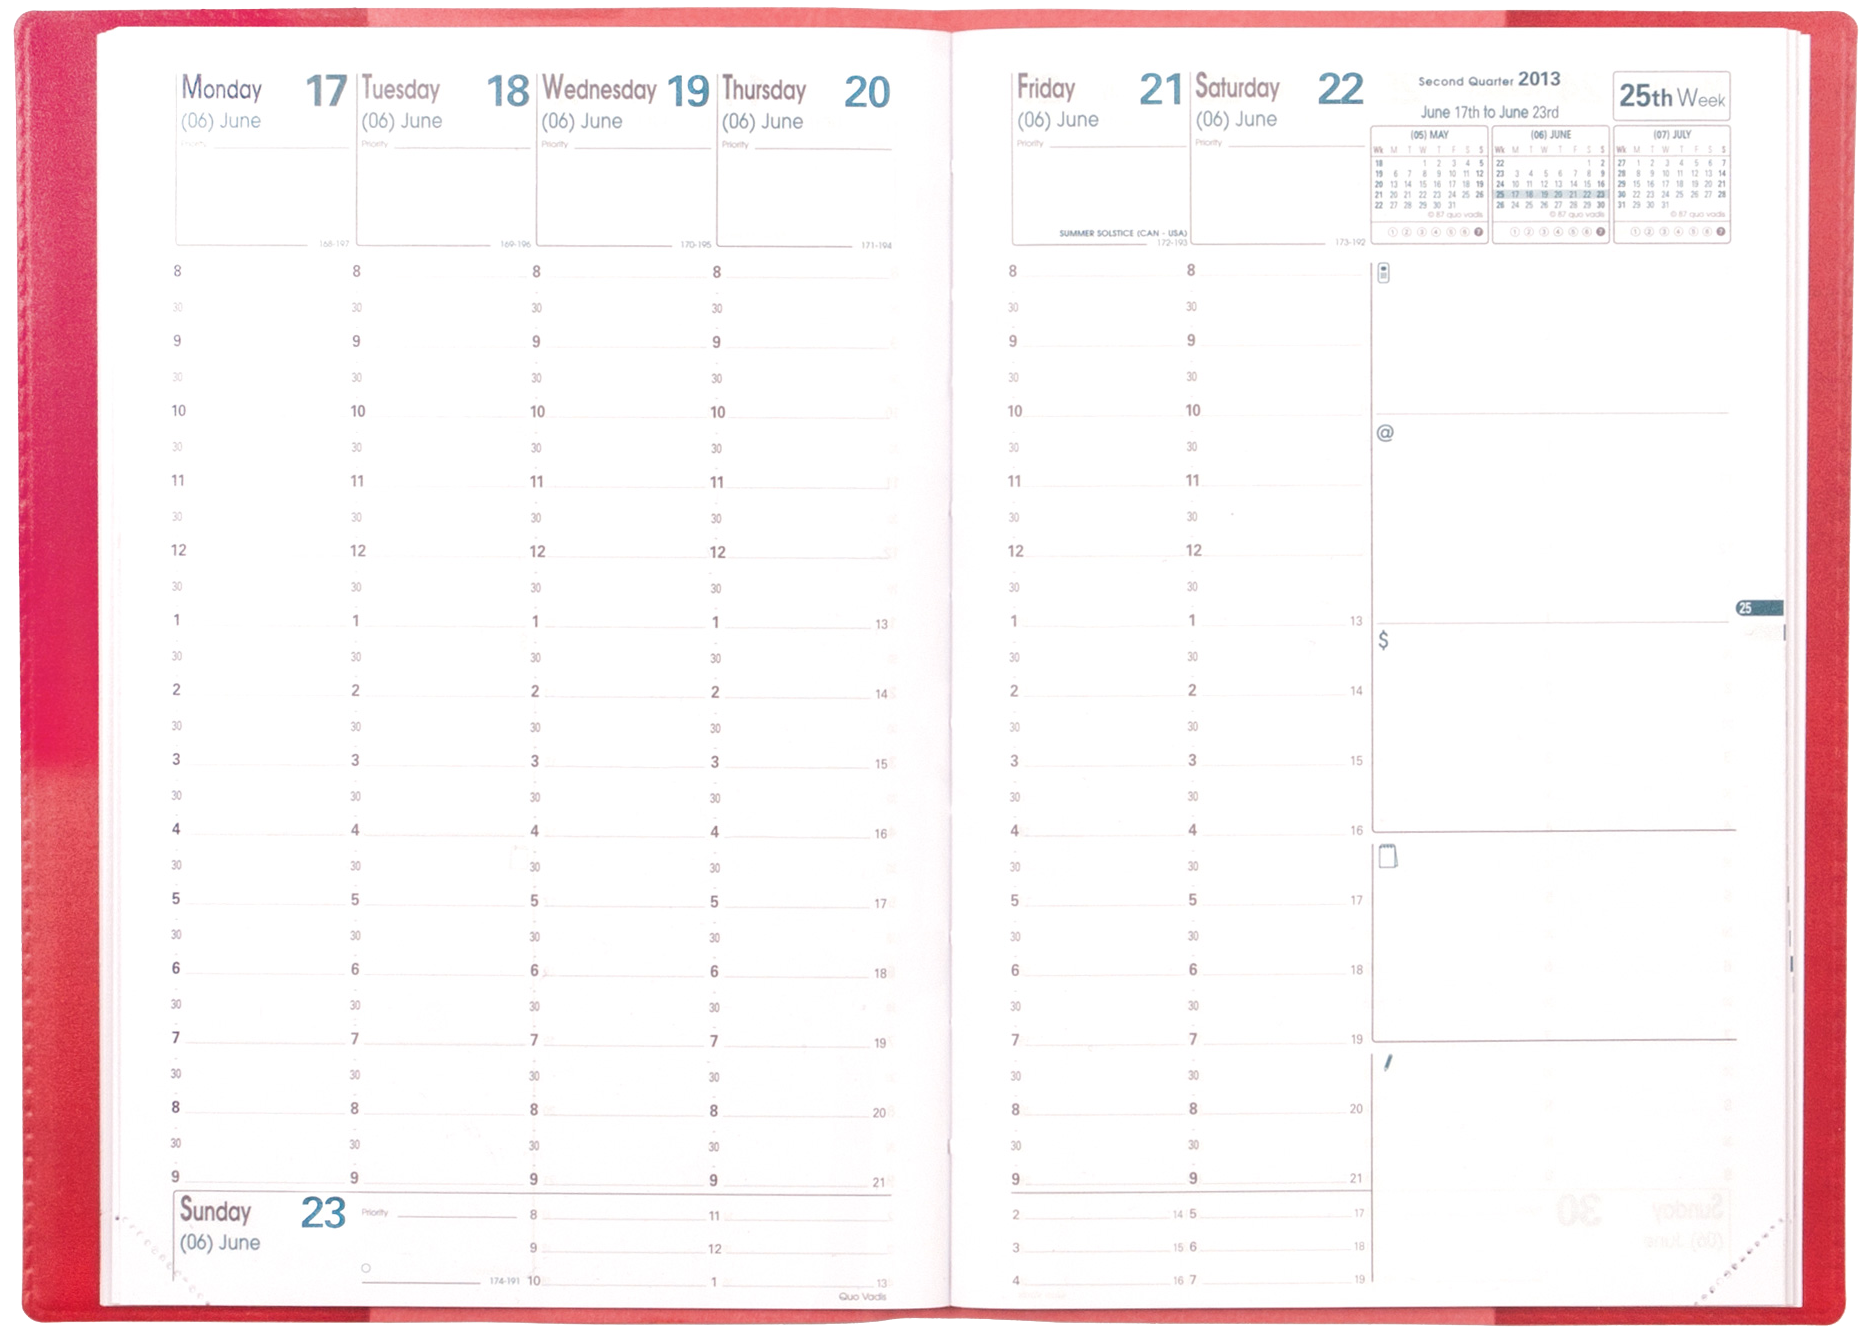 Quo Vadis Weekly Planner